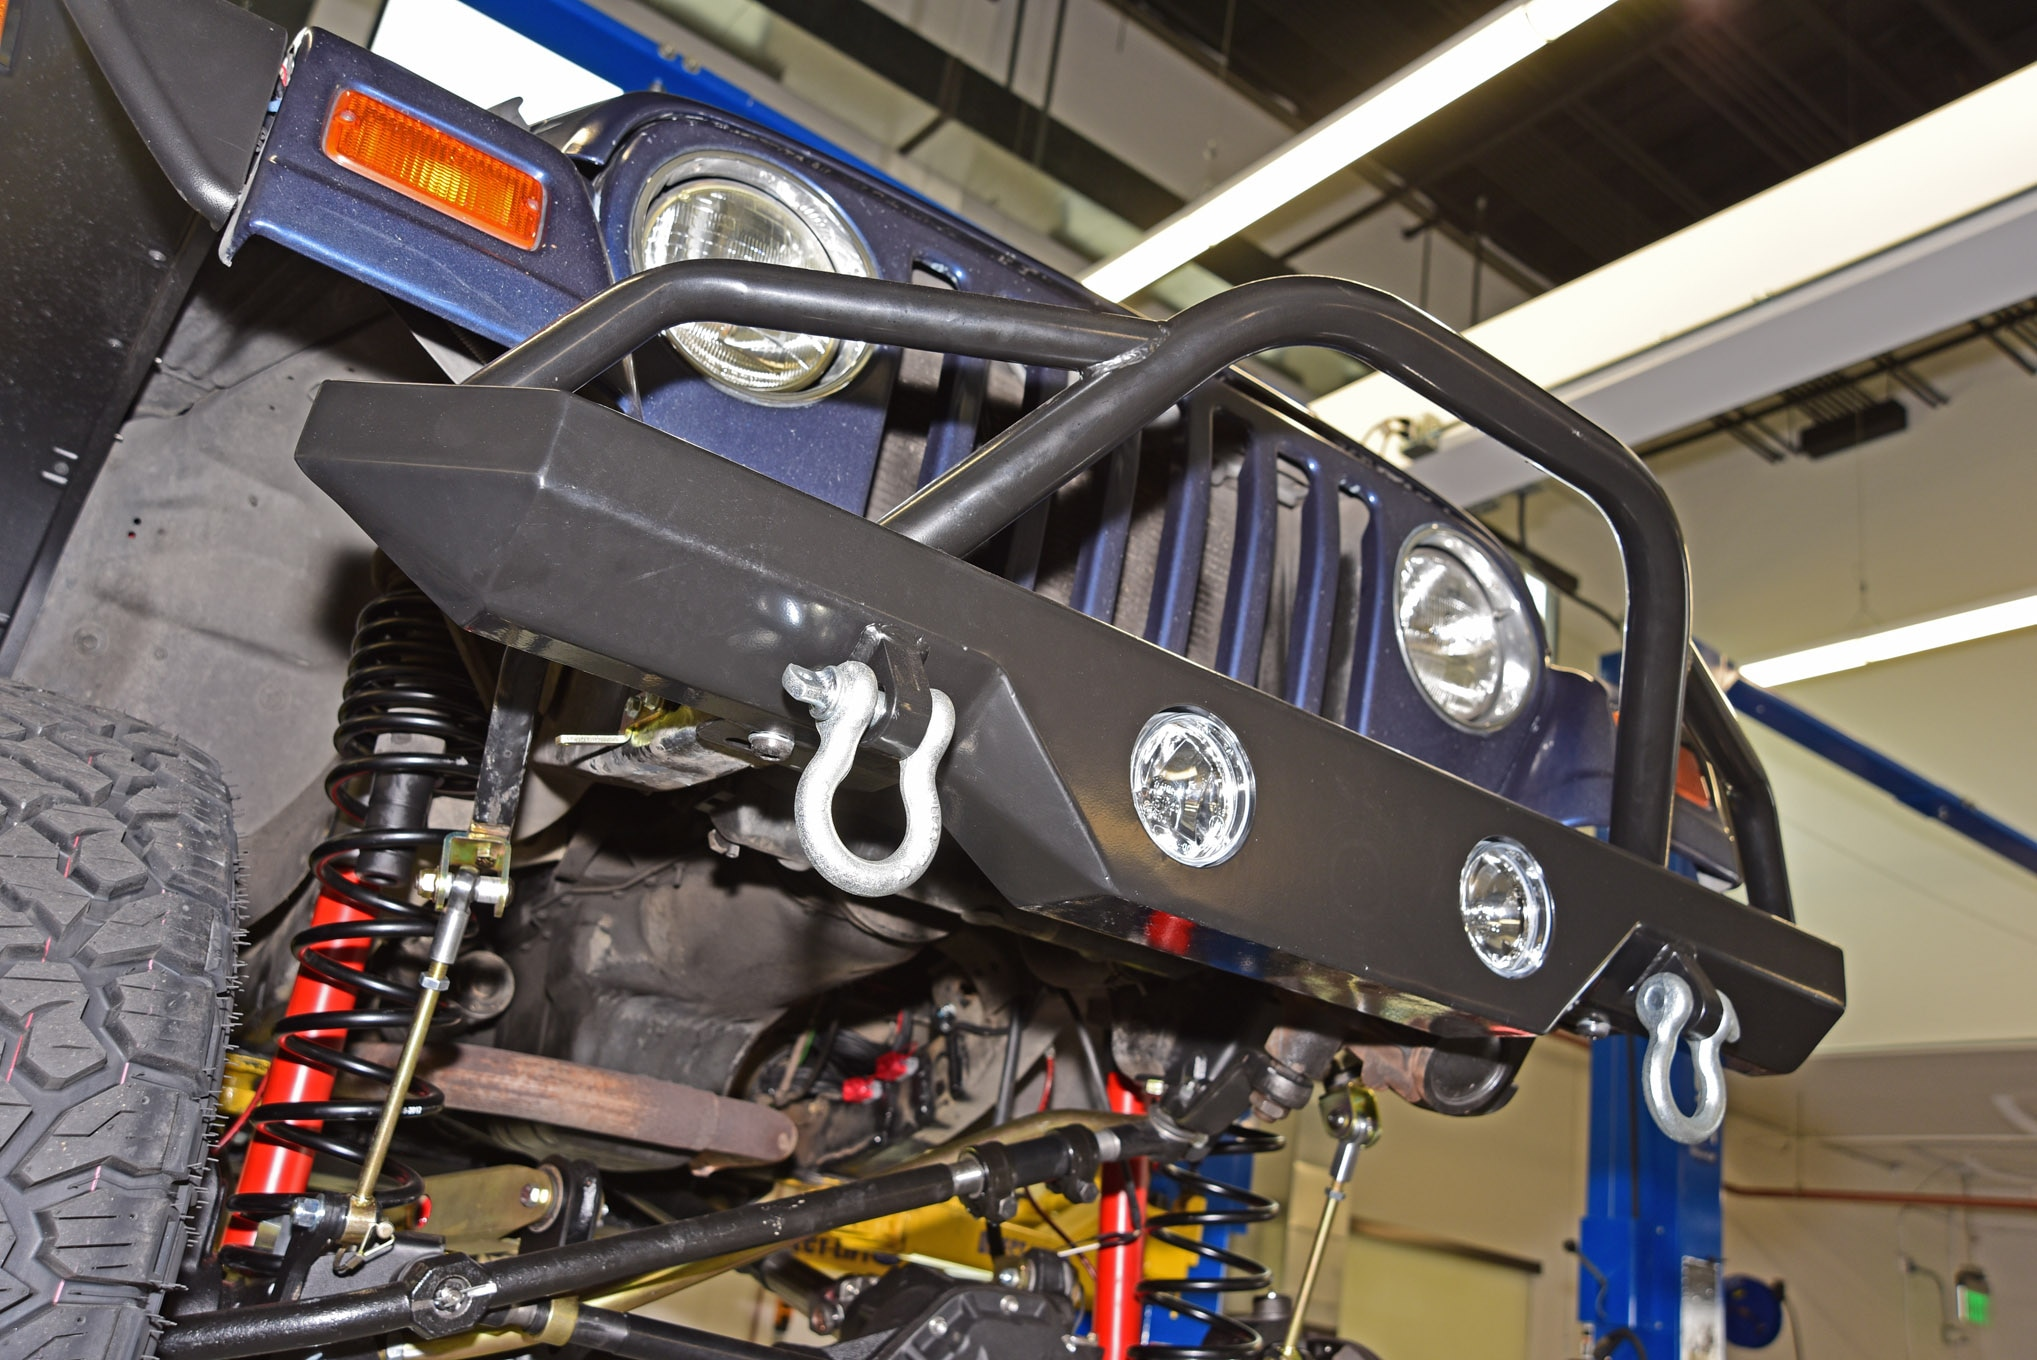 001 jeep bumpers designed for recovery